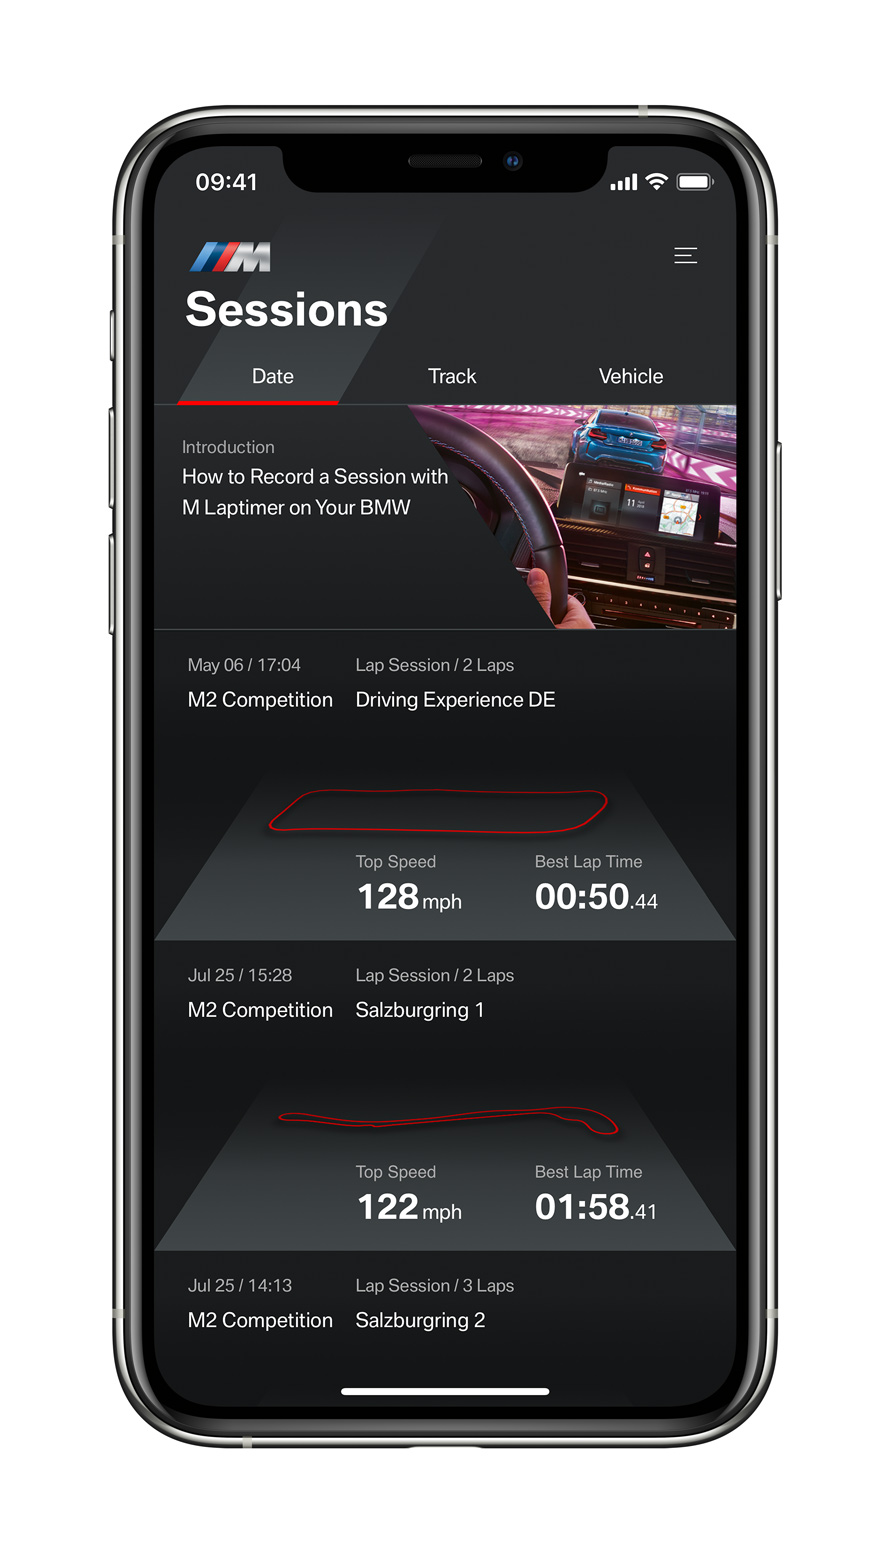 The new BMW M Laptimer for iOS, showed on an iPhone